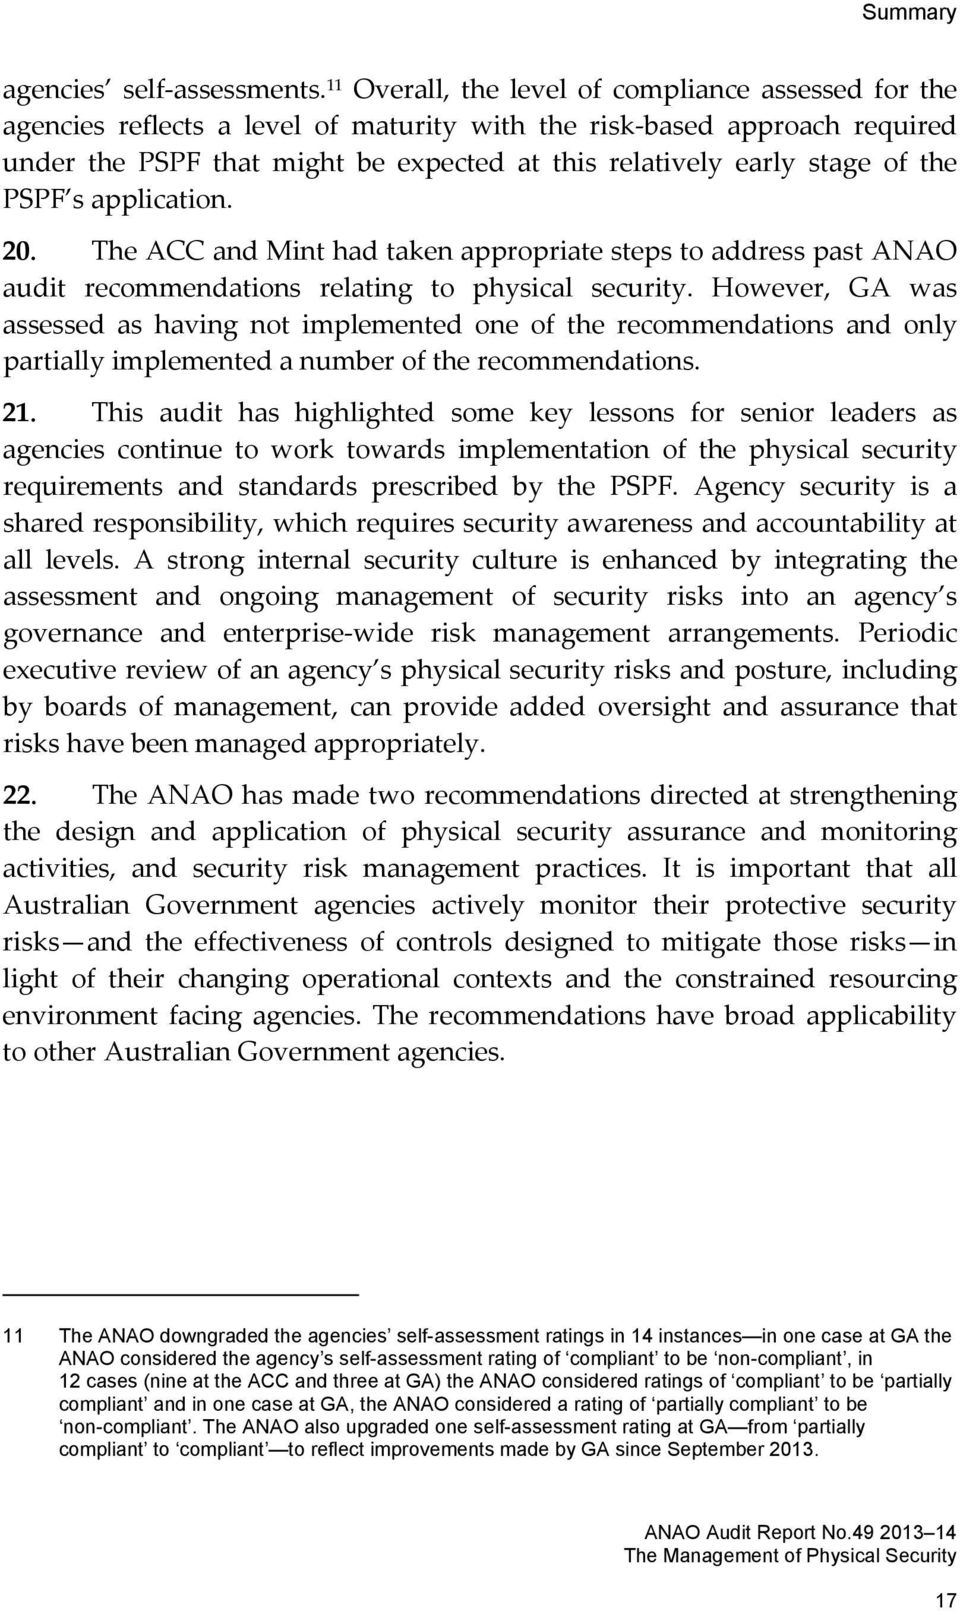 of the PSPF s application. 20. The ACC and Mint had taken appropriate steps to address past ANAO audit recommendations relating to physical security.